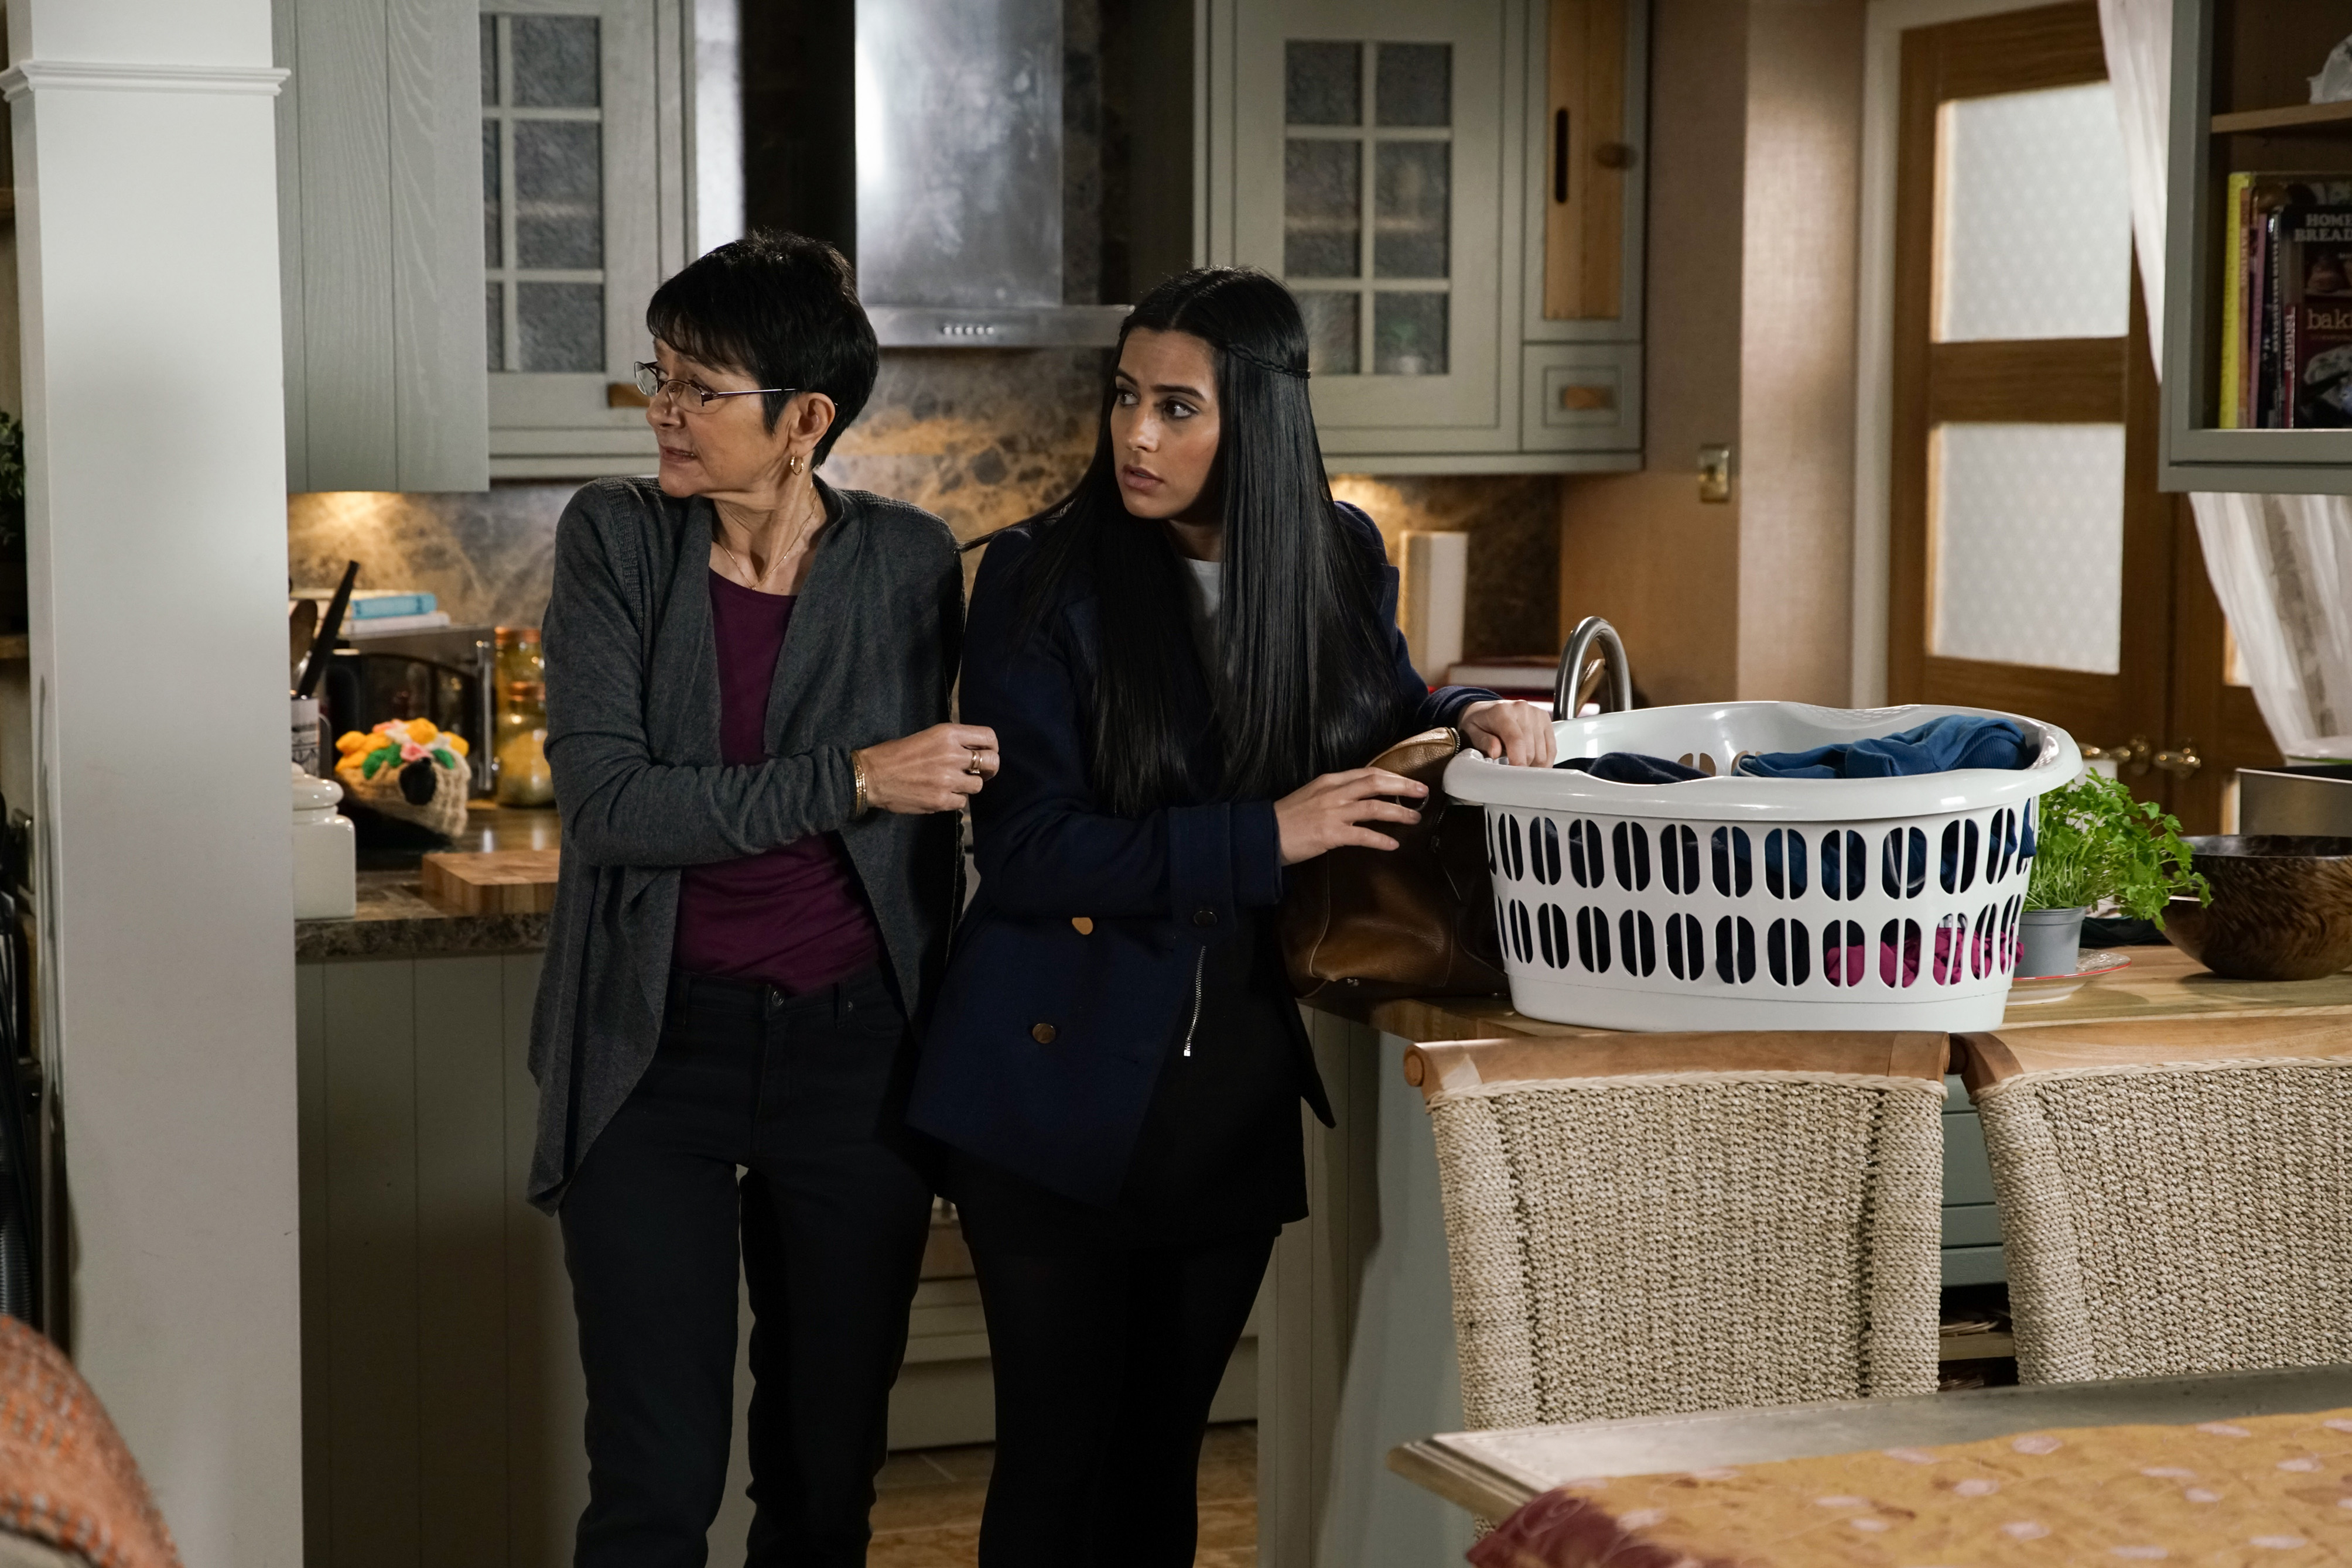 When Yasmeen Metcalfe [SHELLEY KING] reveals that they're moving to Cyprus, Alya's horrified and tells Yasmeen that it's clear Geoff is abusing her and trying to separate her from the people who care about her. Determined to rescue her Gran from the clutches of Geoff, Alya grabs some of Yasmeen's clothes and starts stuffing them into a bag,  (ITV Plc)